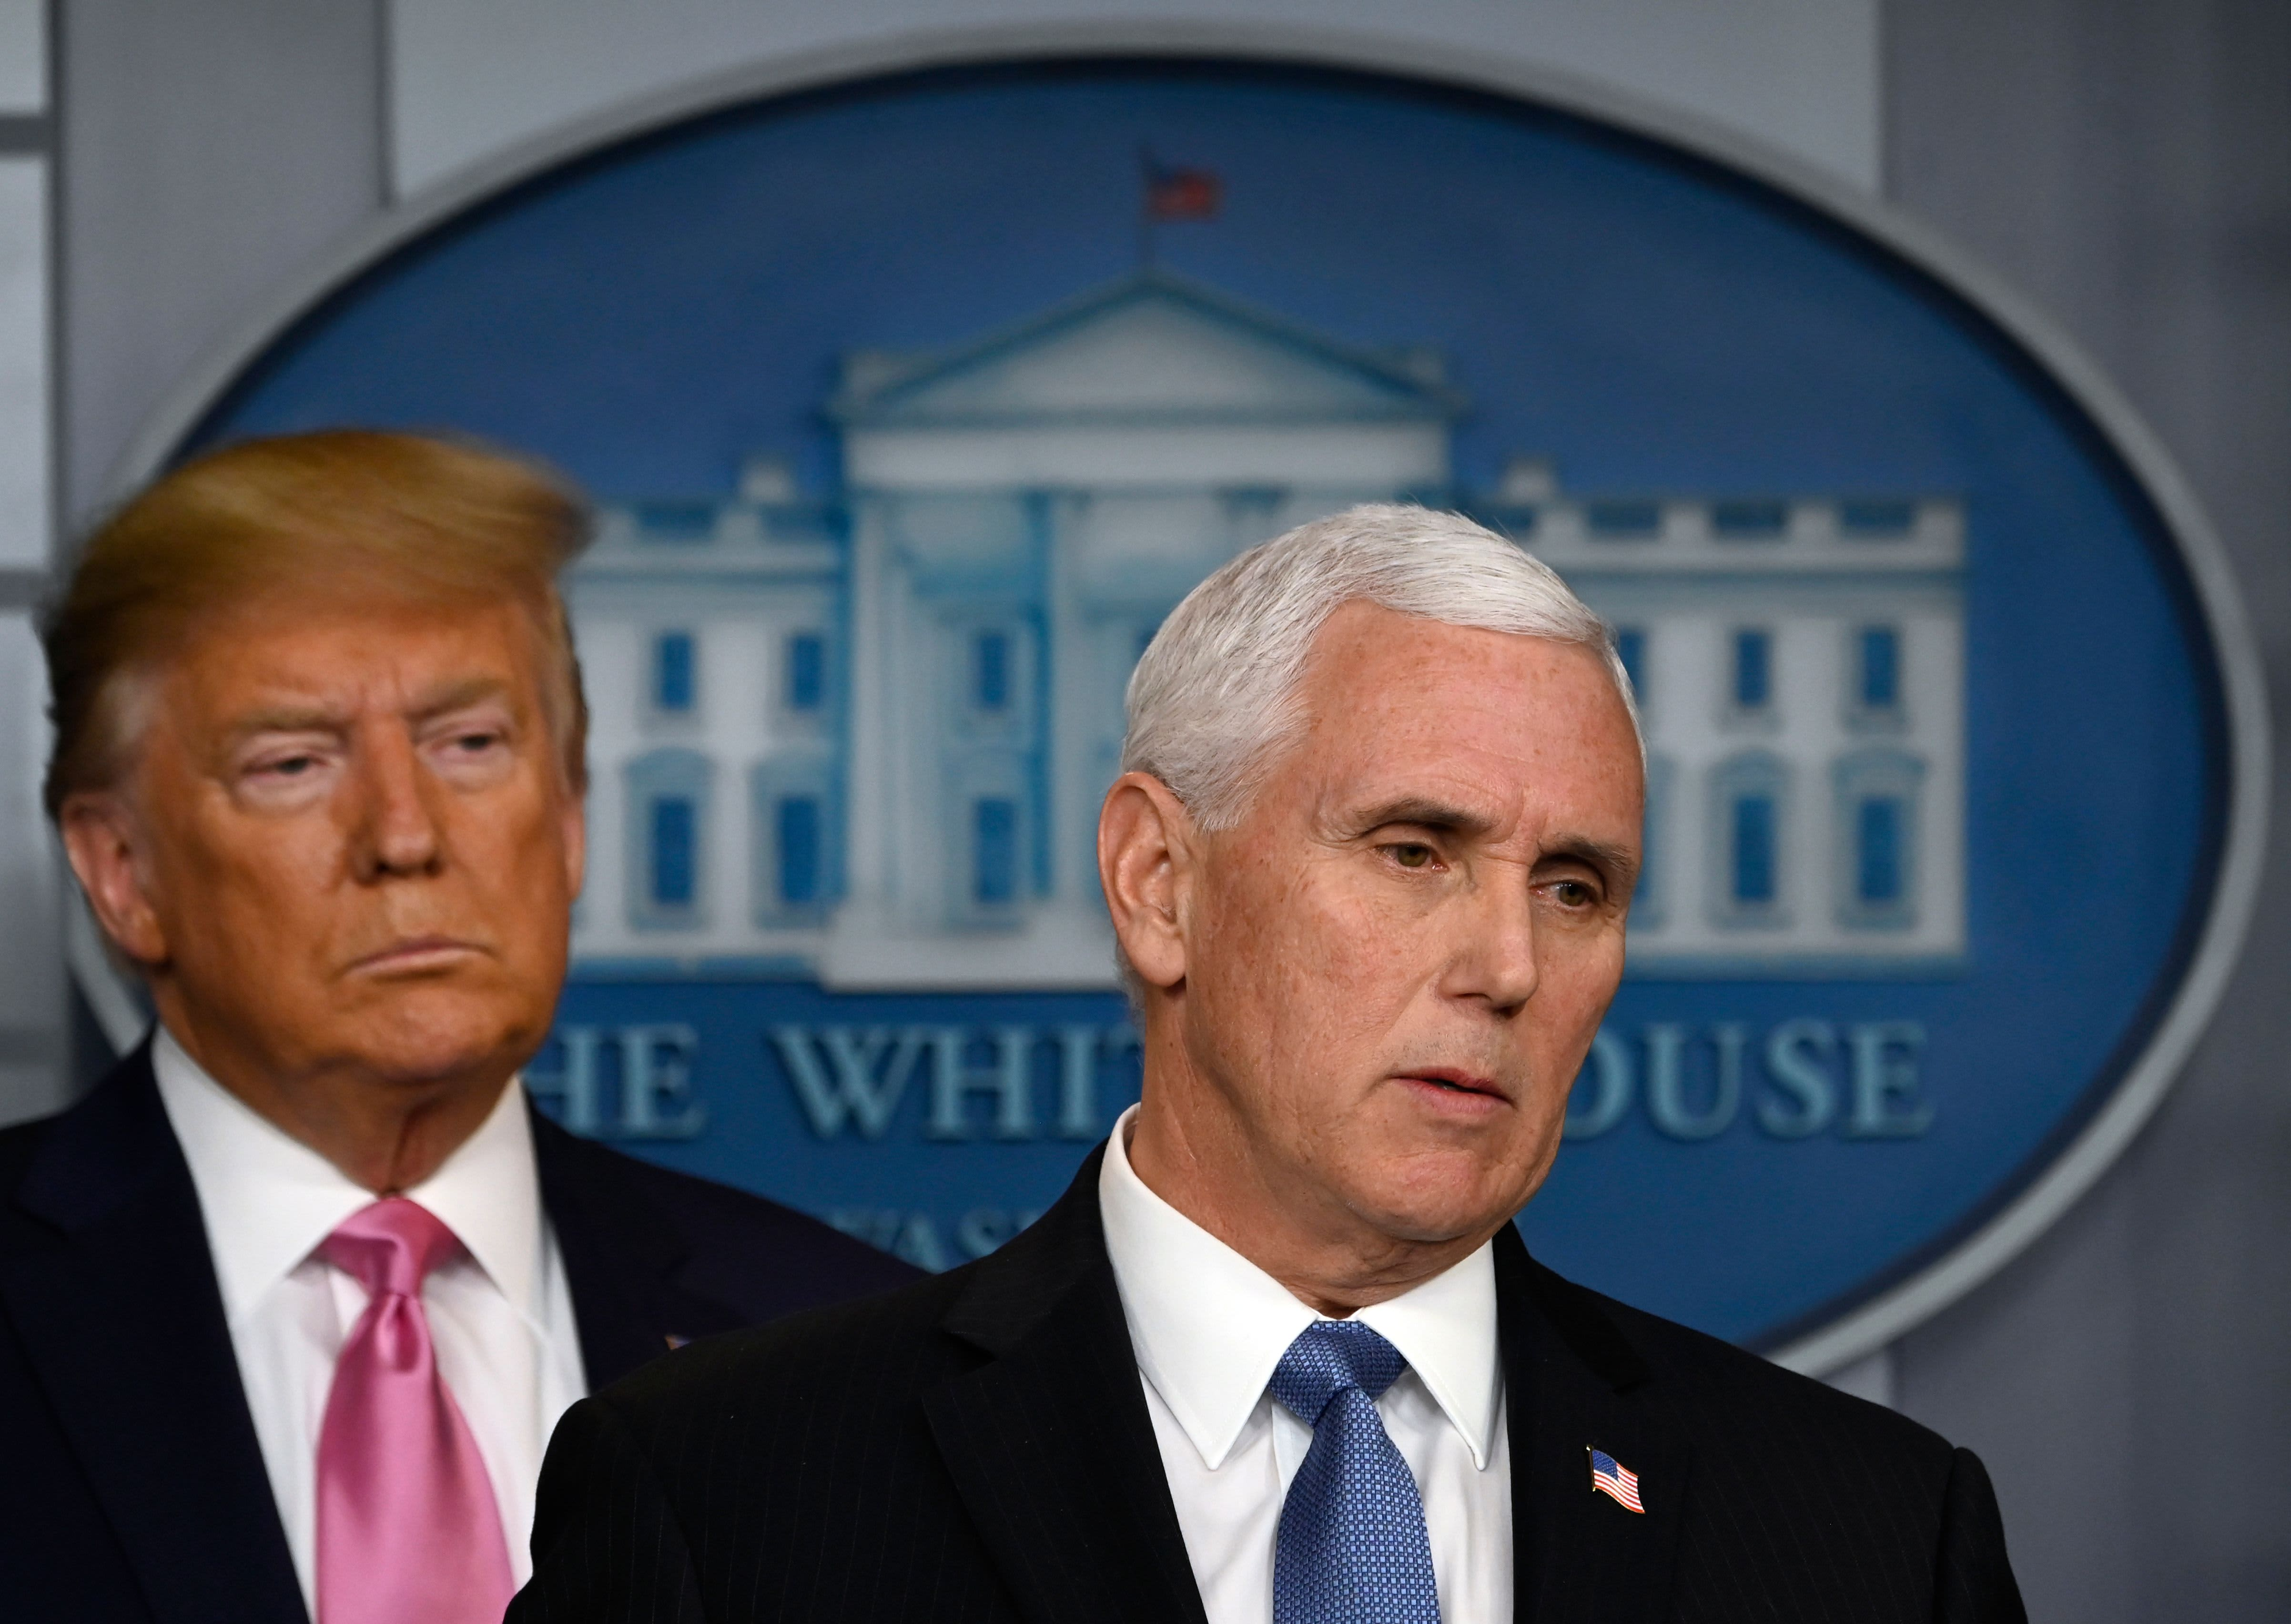 Coronavirus live updates: Pence says markets will recover, WHO chief warns of more Europe outbreaks